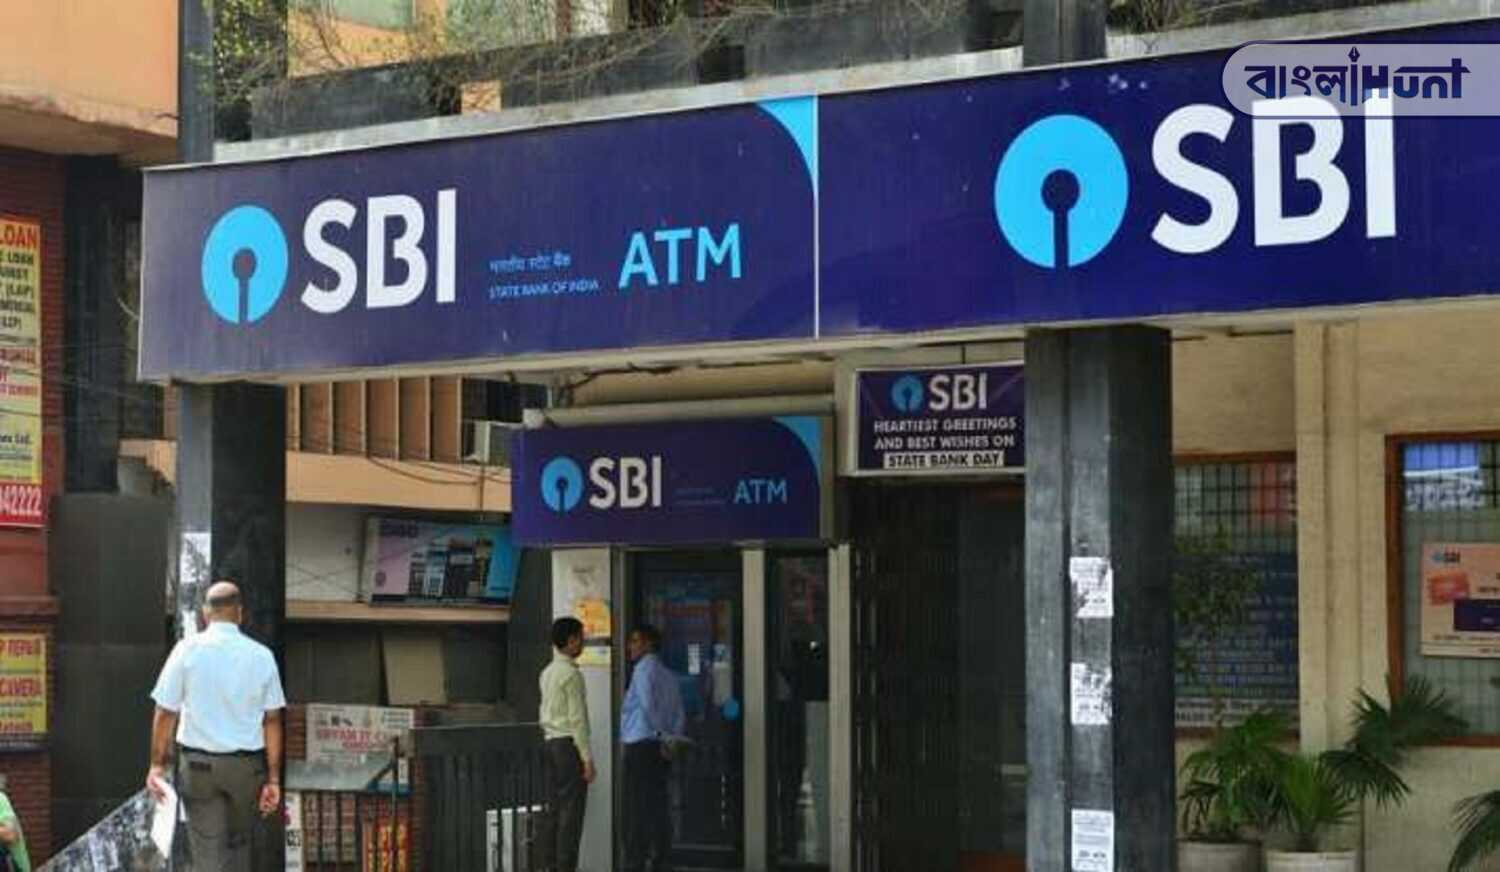 SBI has come up with special offers for customers